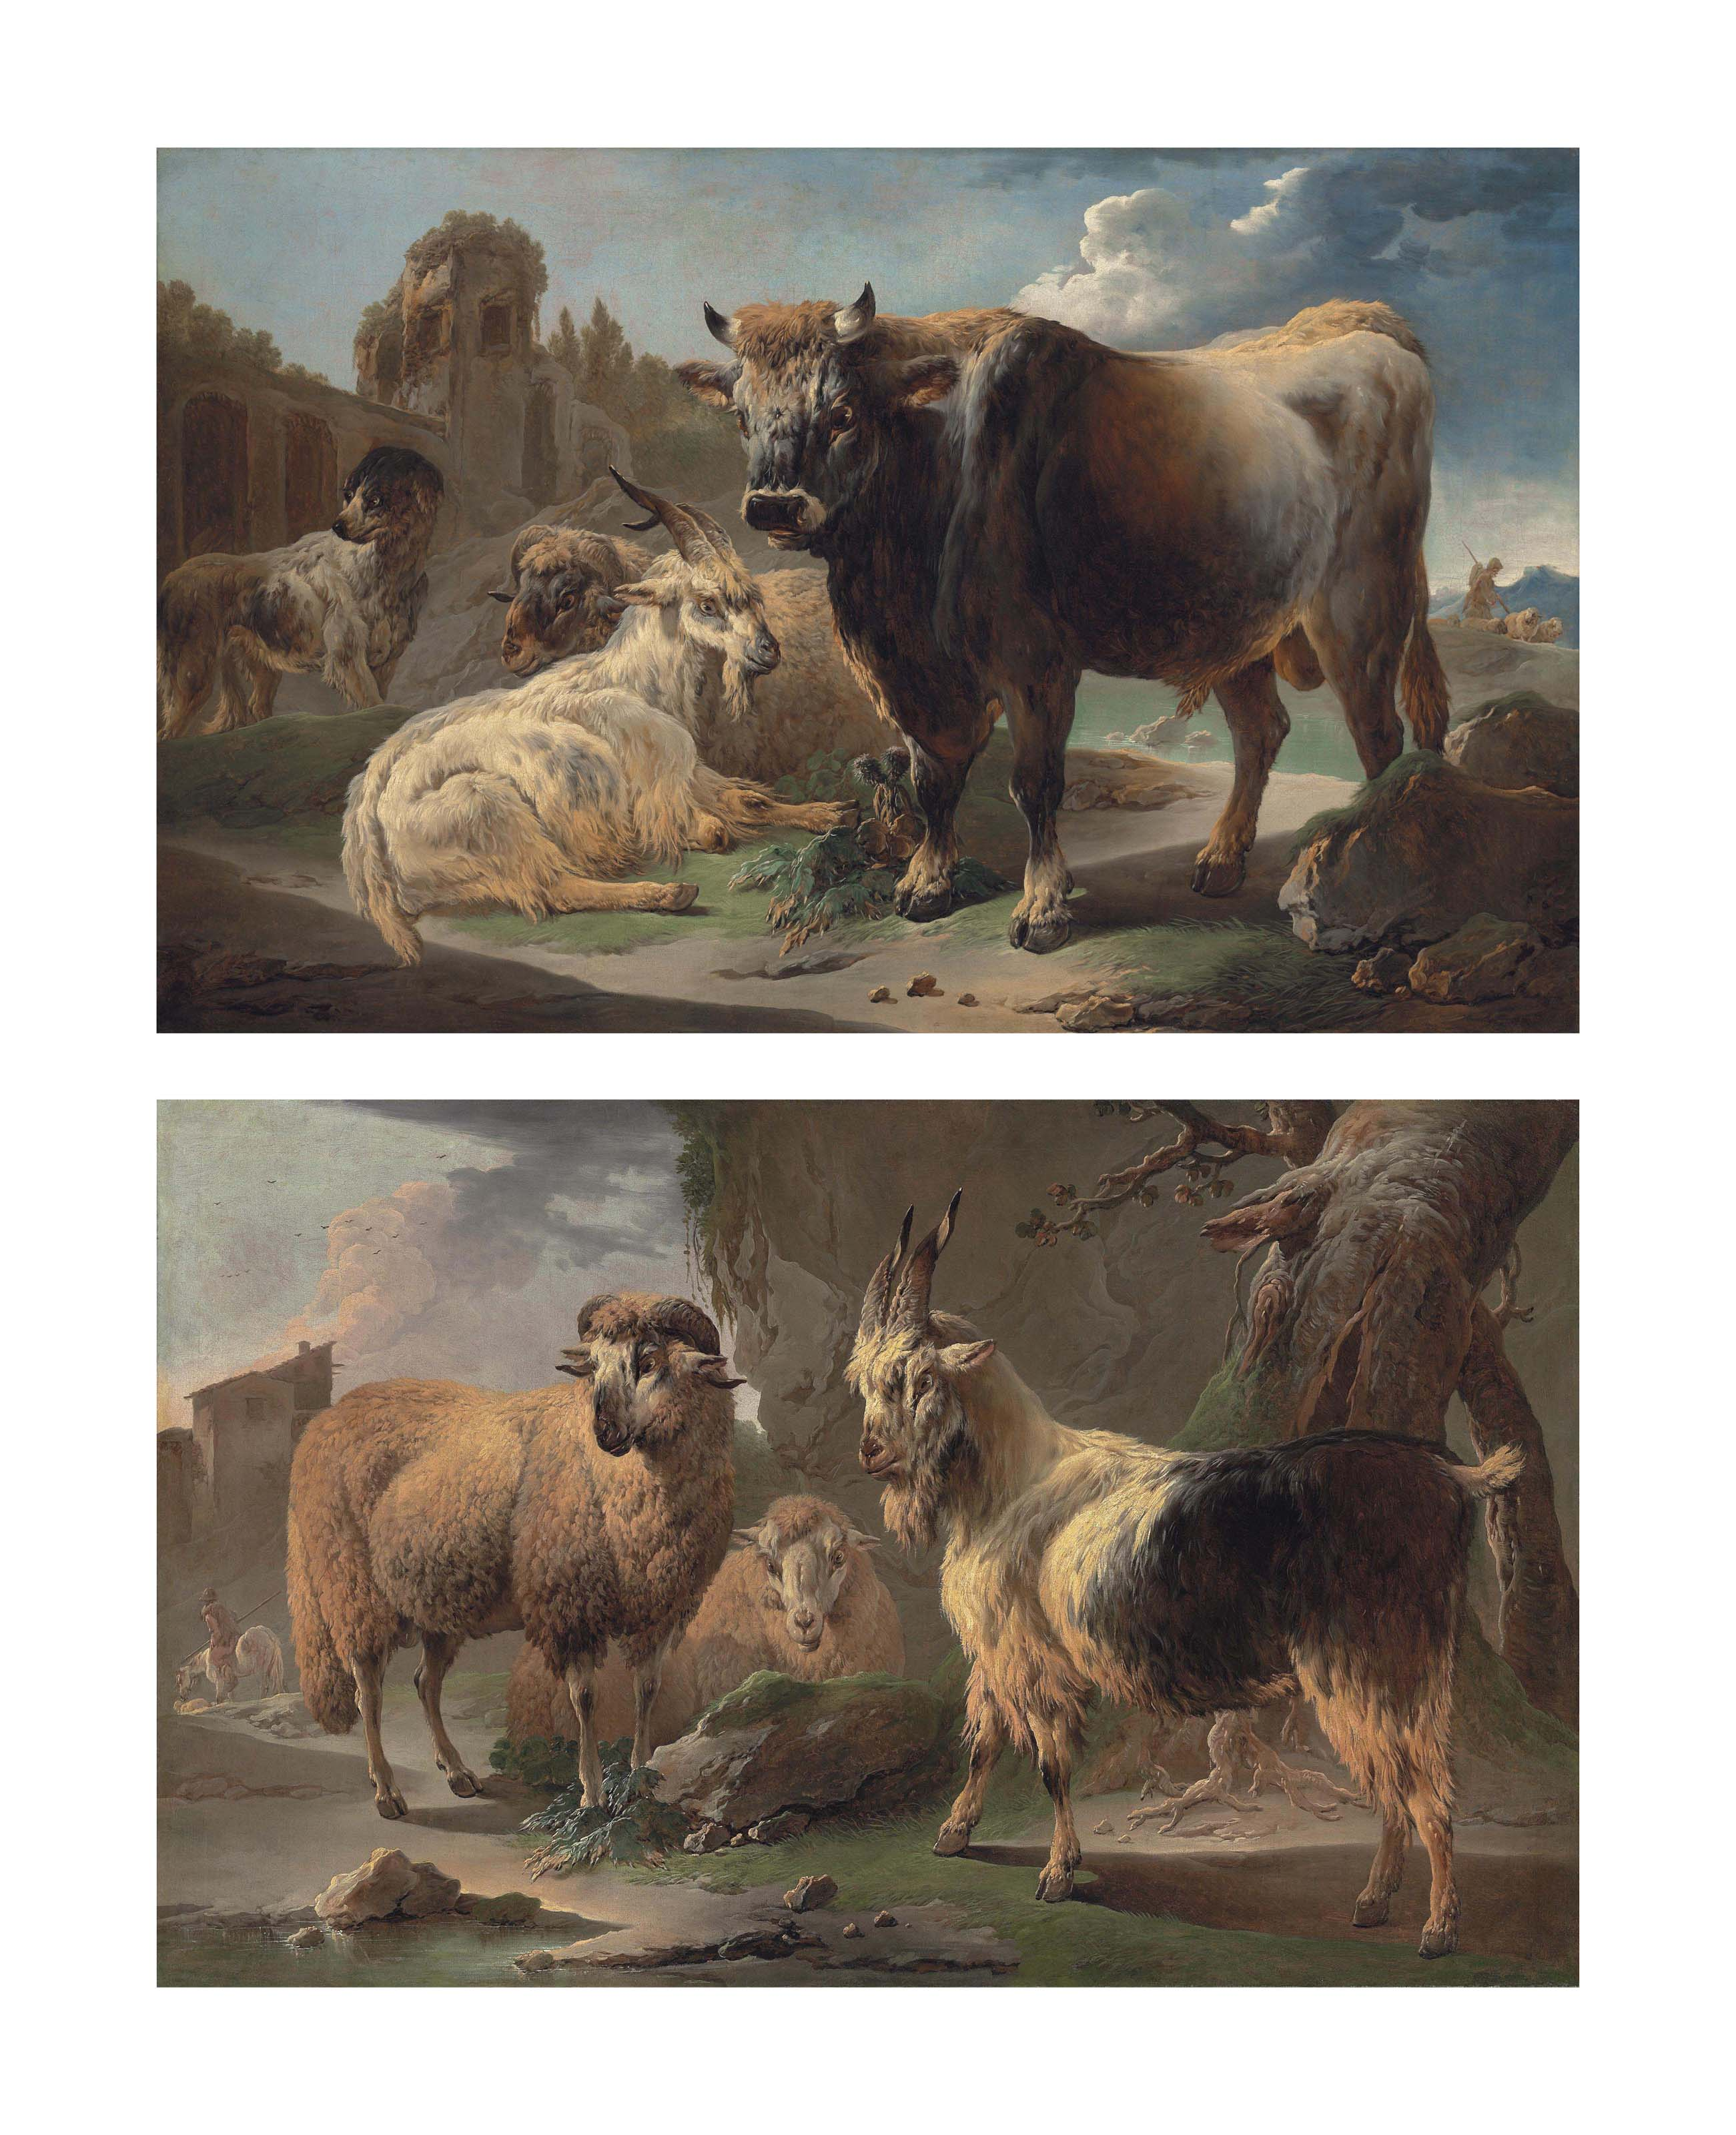 A bull, goat, ram and sheepdog before ruins in a rocky landscape; and A sheep and a goat, with a horseman beyond in a rocky landscape